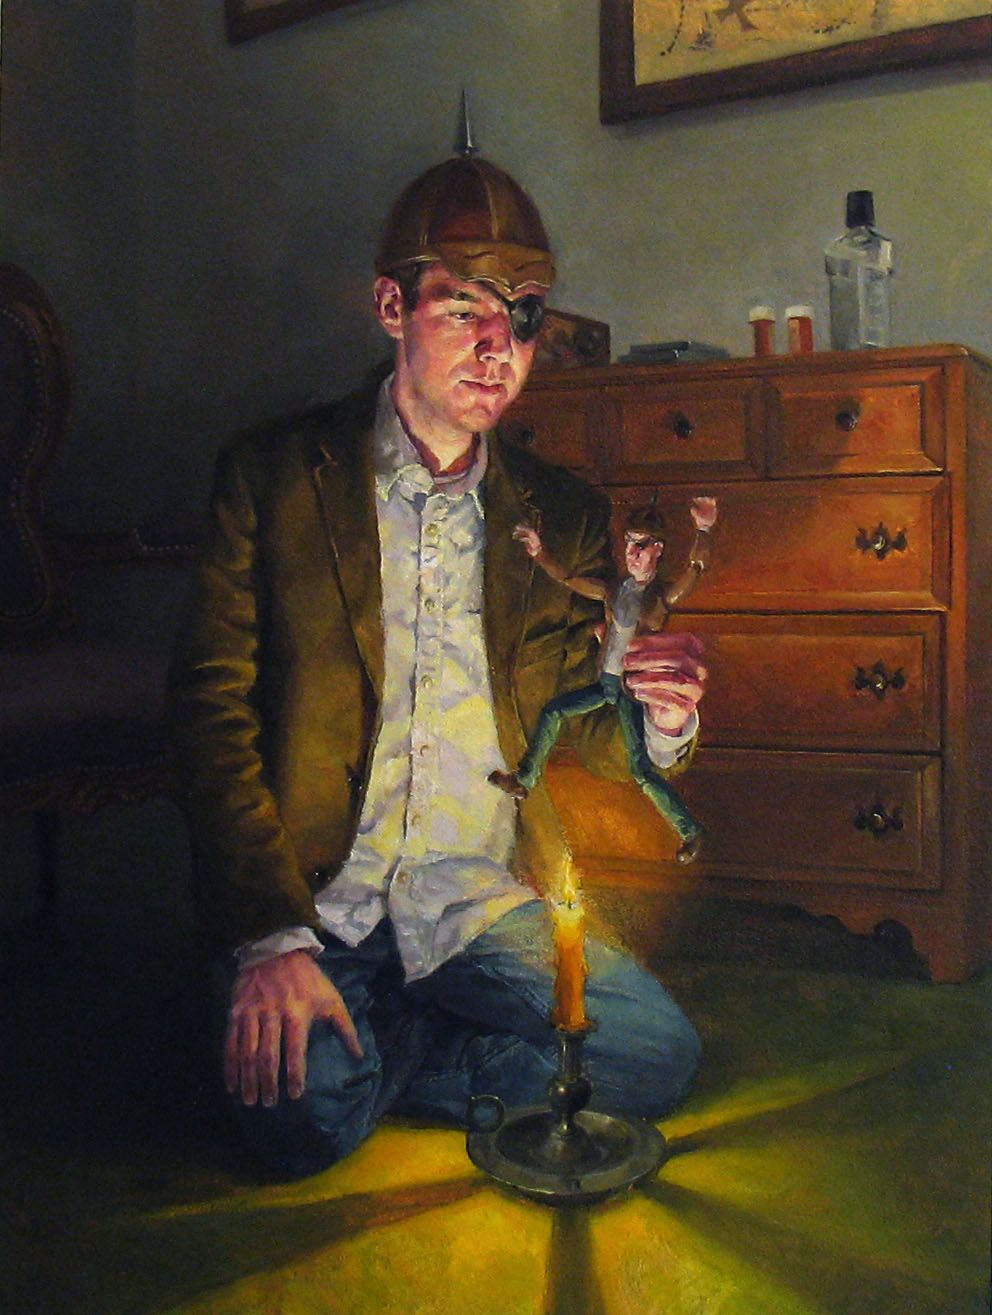 NATHANIEL ROGERS Nimble Jack 2009, oil on panel, 8 x 6 inches.